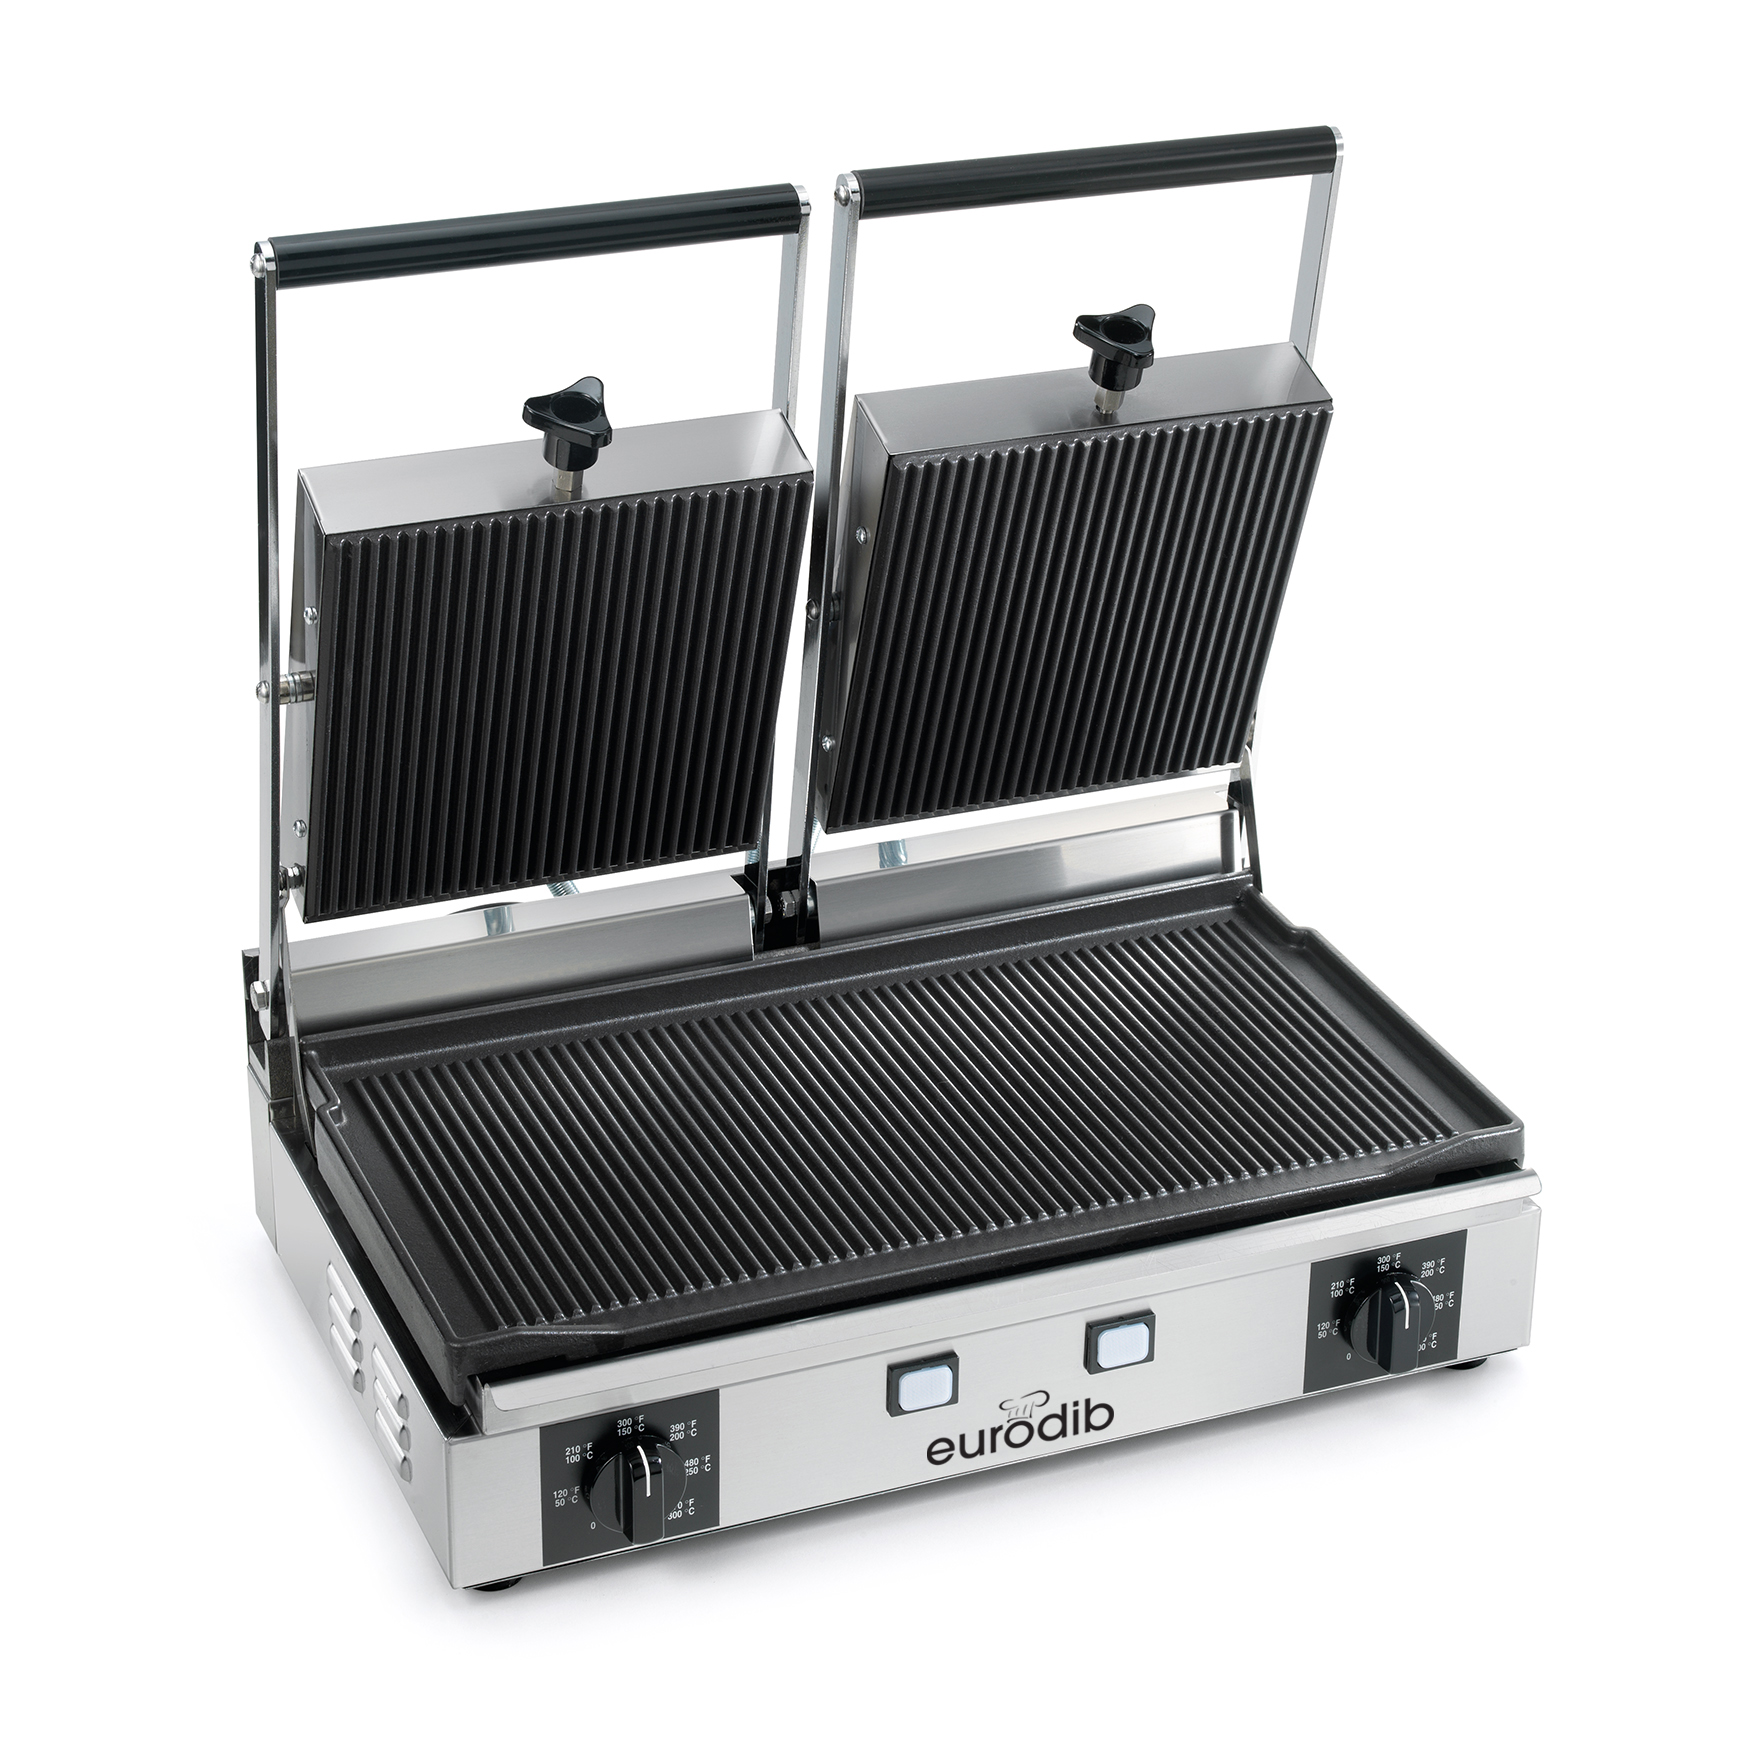 Eurodib USA PD-RR-PS panini grills - accessories